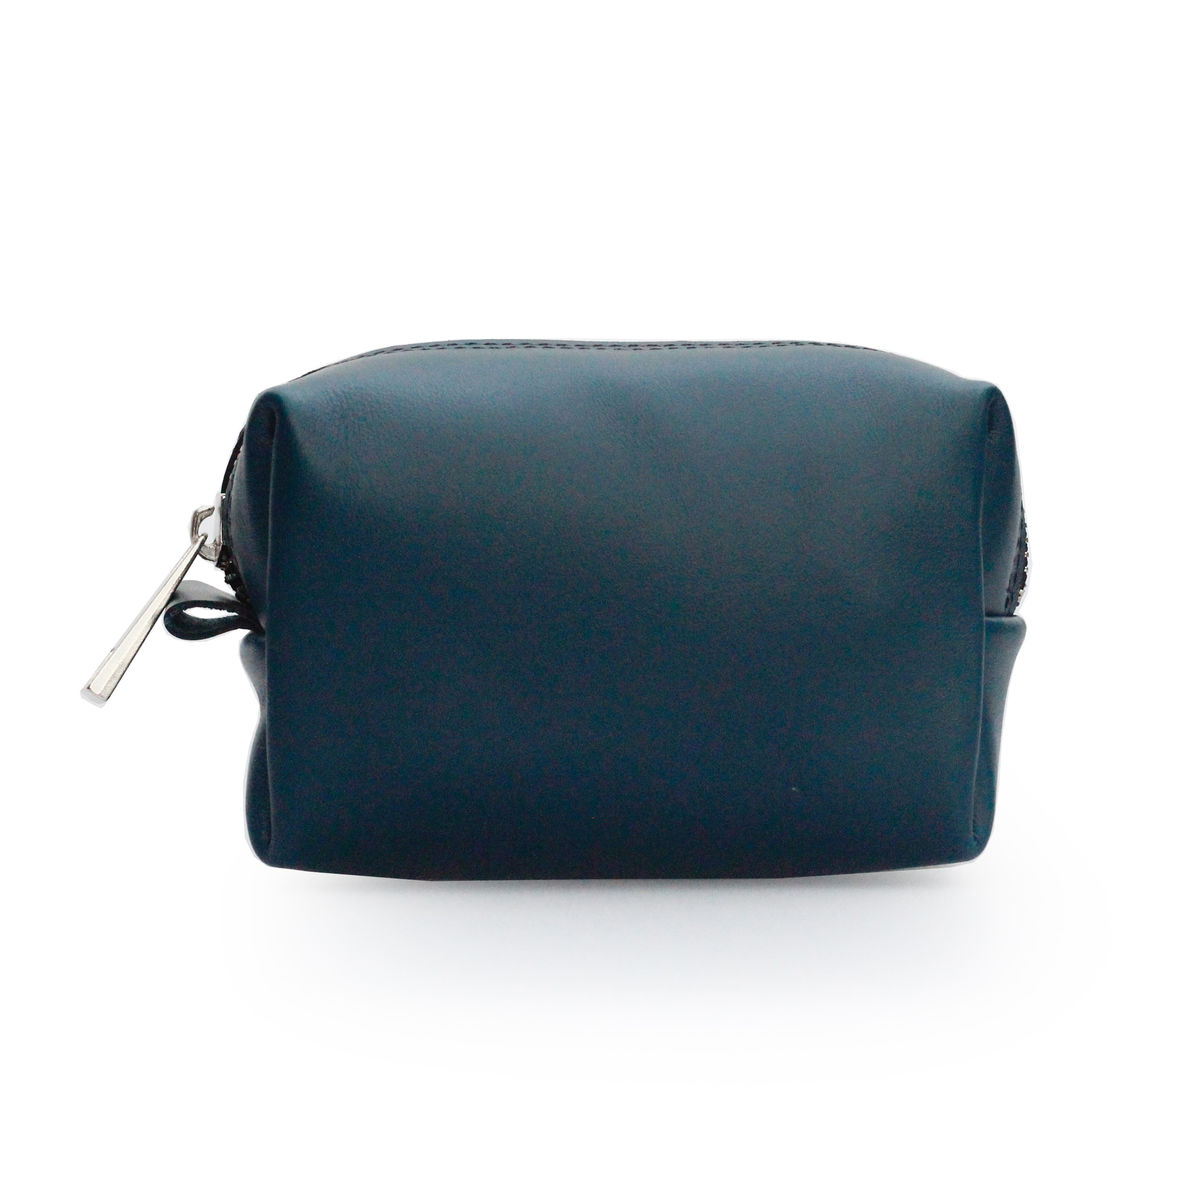 Teal Petite Millie Cosmetic Bag - product images  of